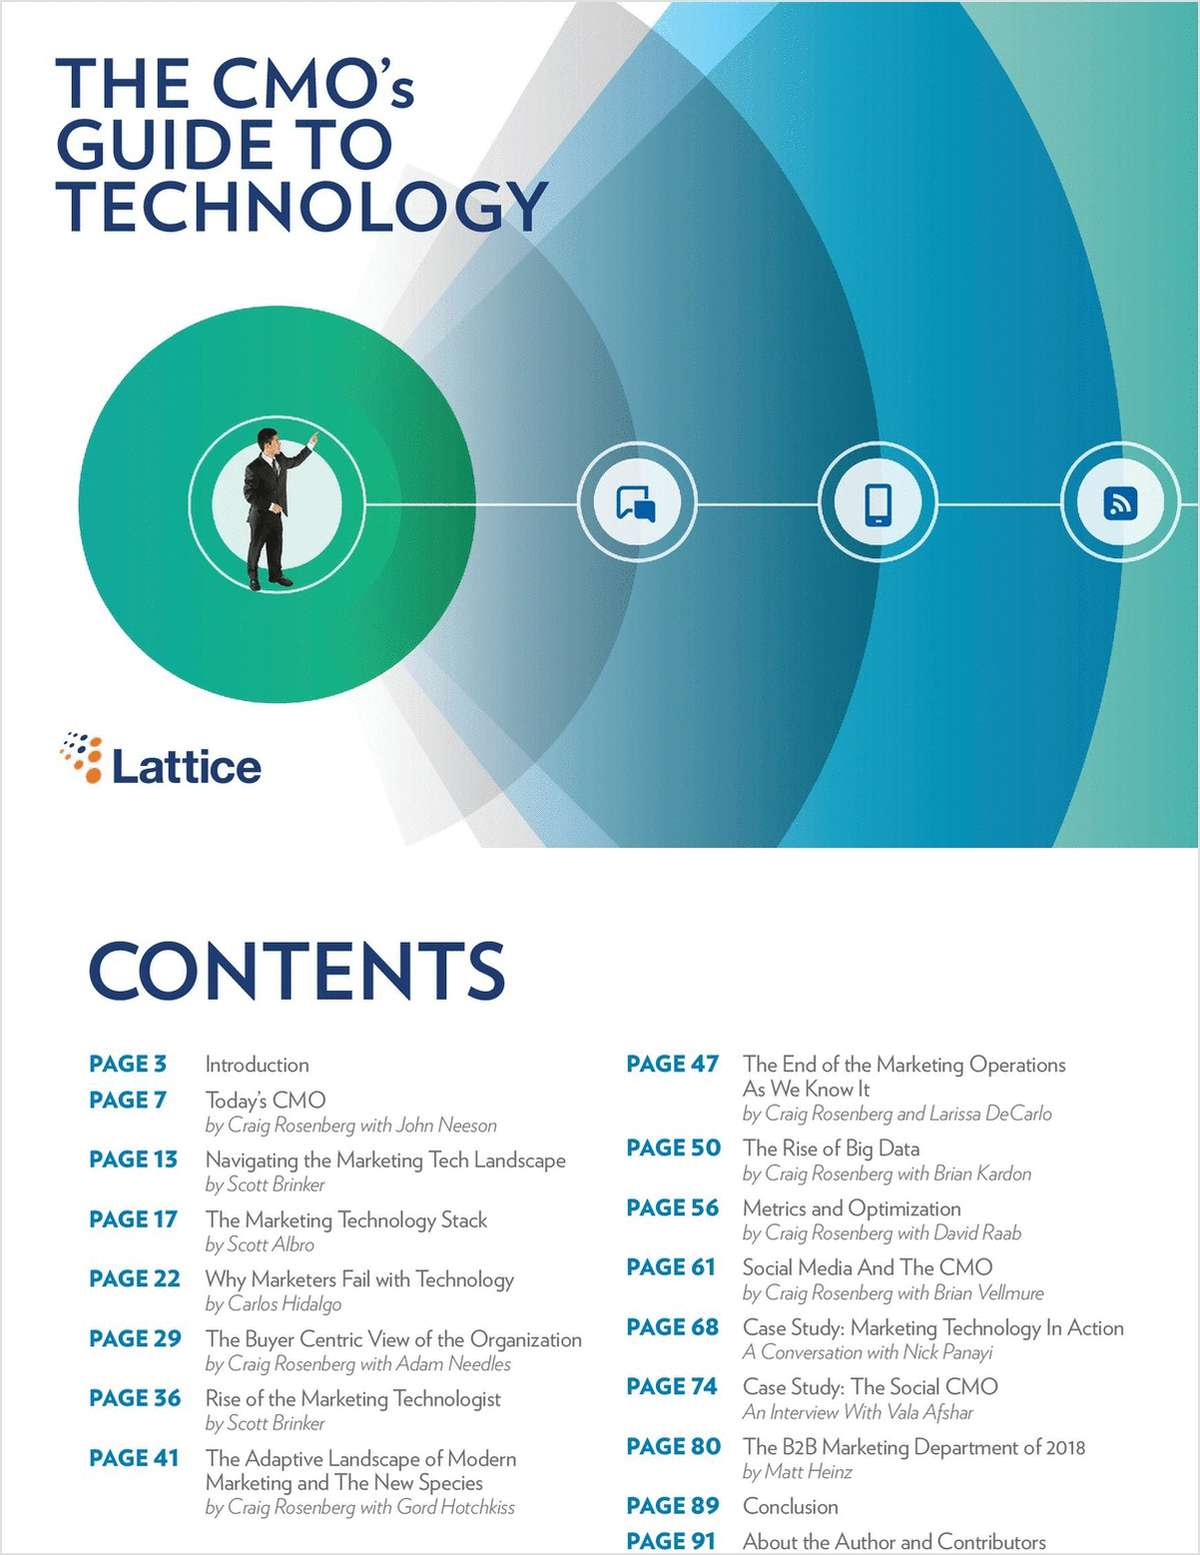 The Ultimate Technology Guide for CMOs